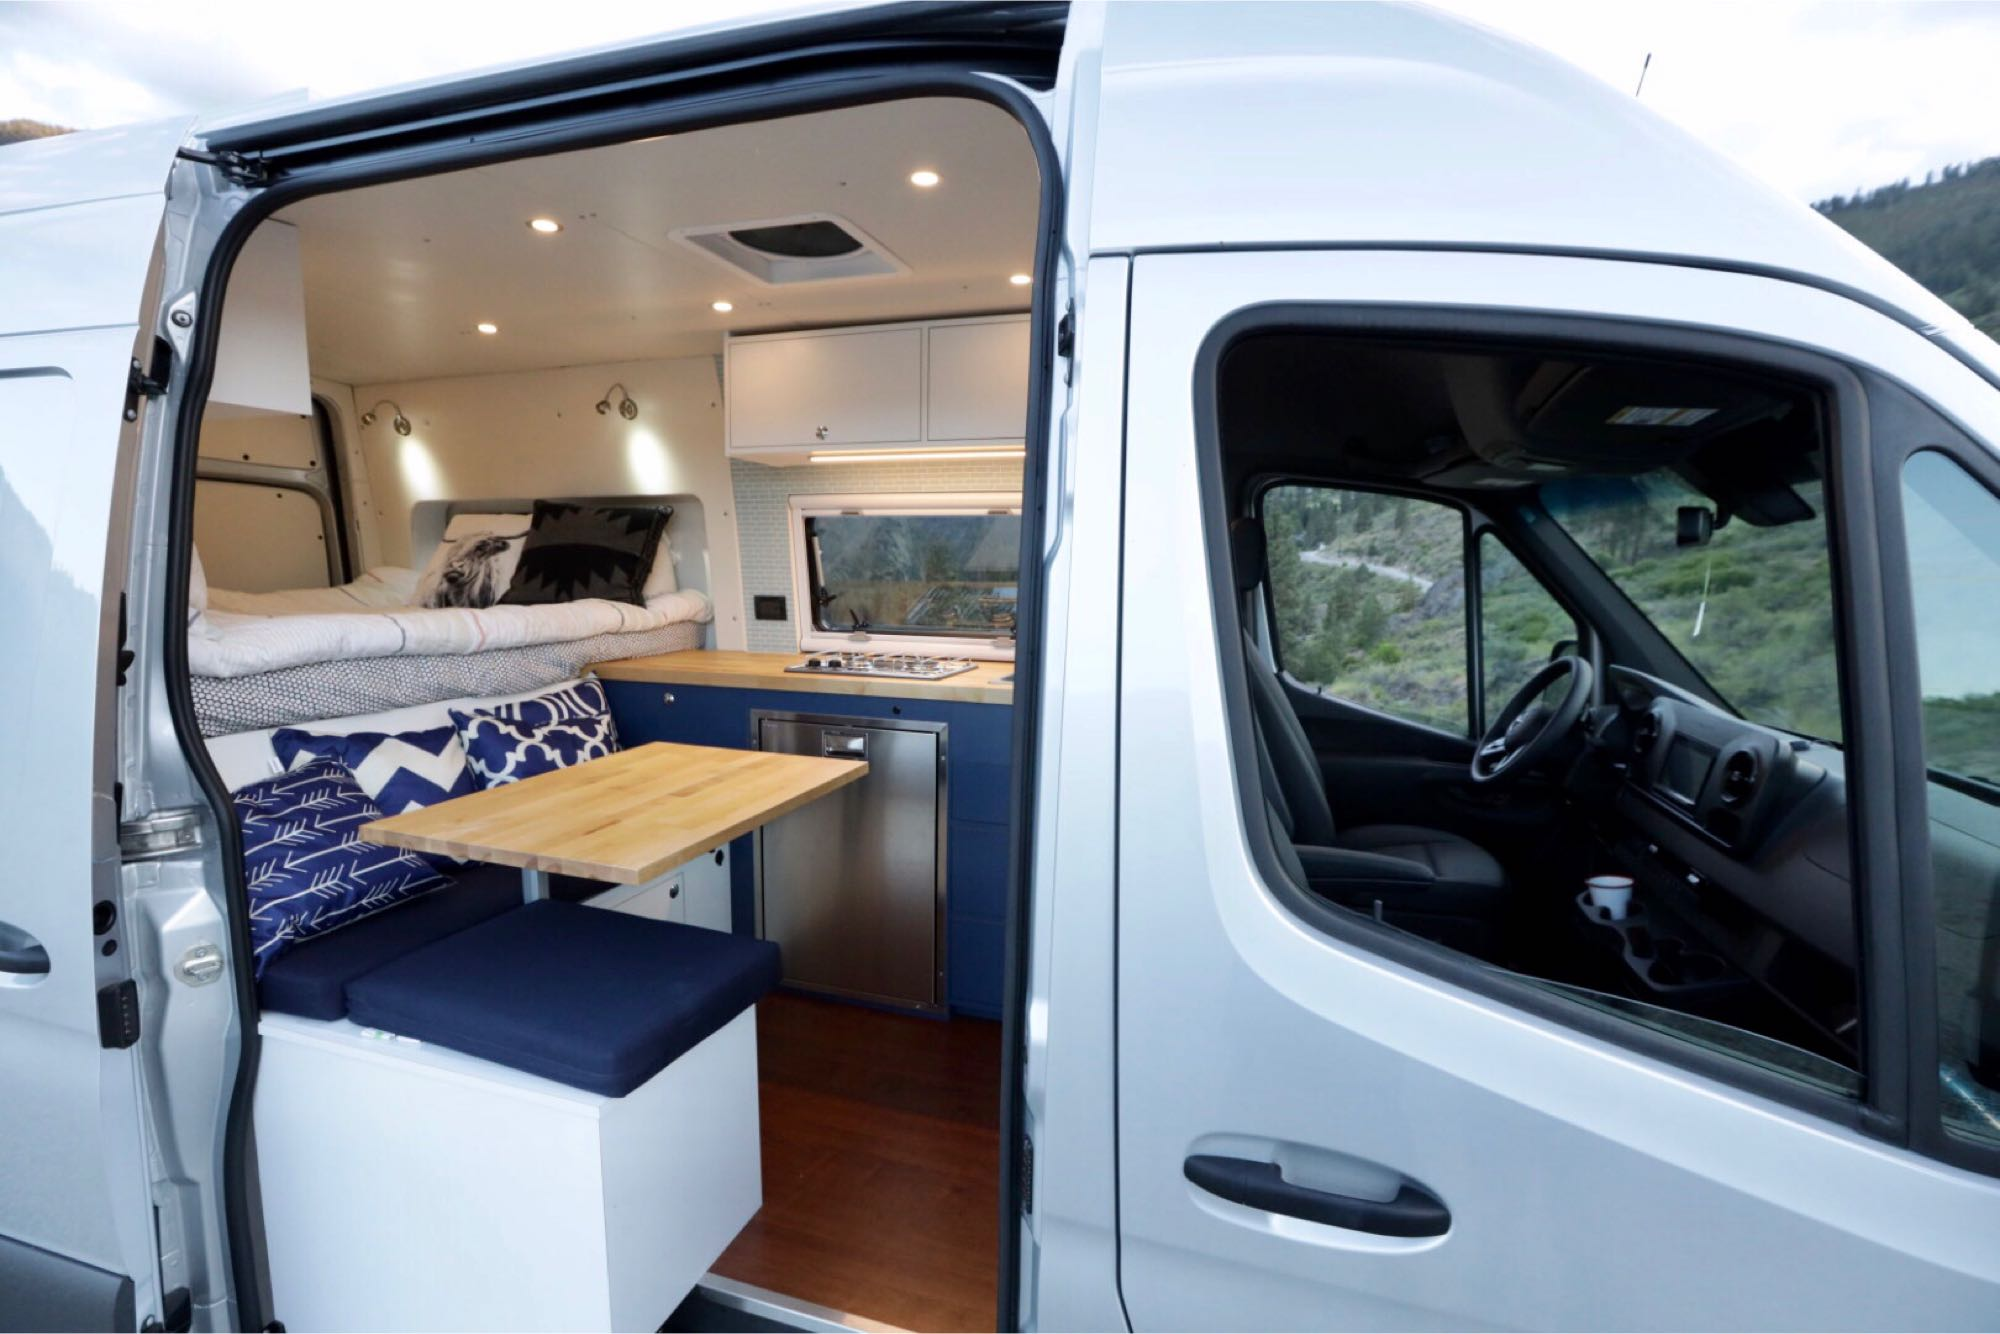 Make meals simple, or go all out with everything you need to make a gourmet meal. Mercedes-Benz Sprinter 2019